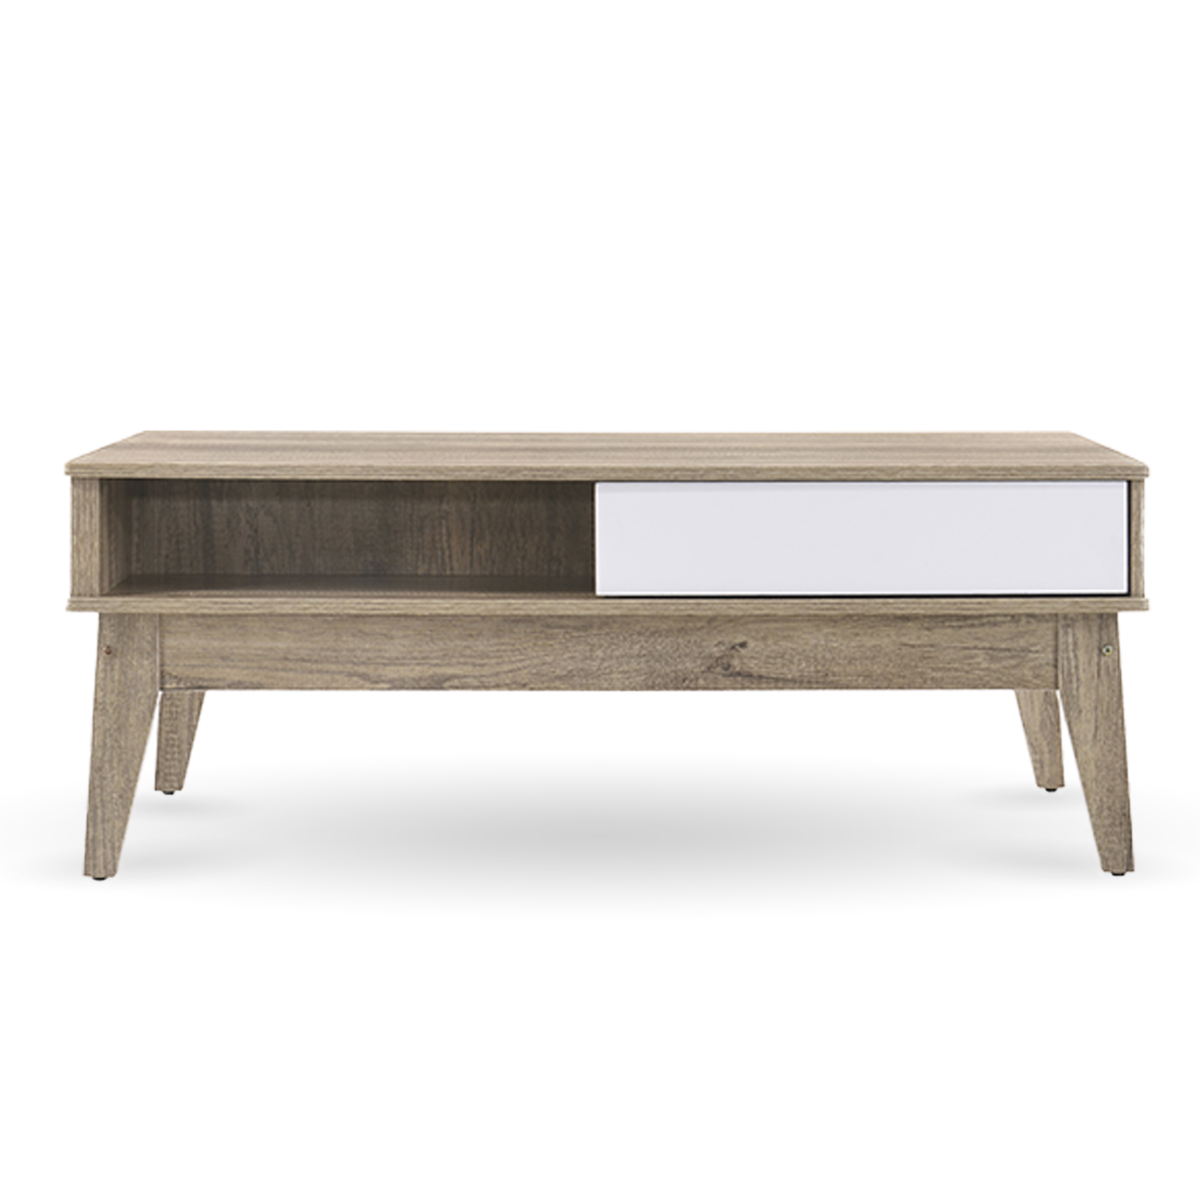 Scandinavian Coffee Table Oak Coffee Table Scandinavian Living Room Furniture Australia